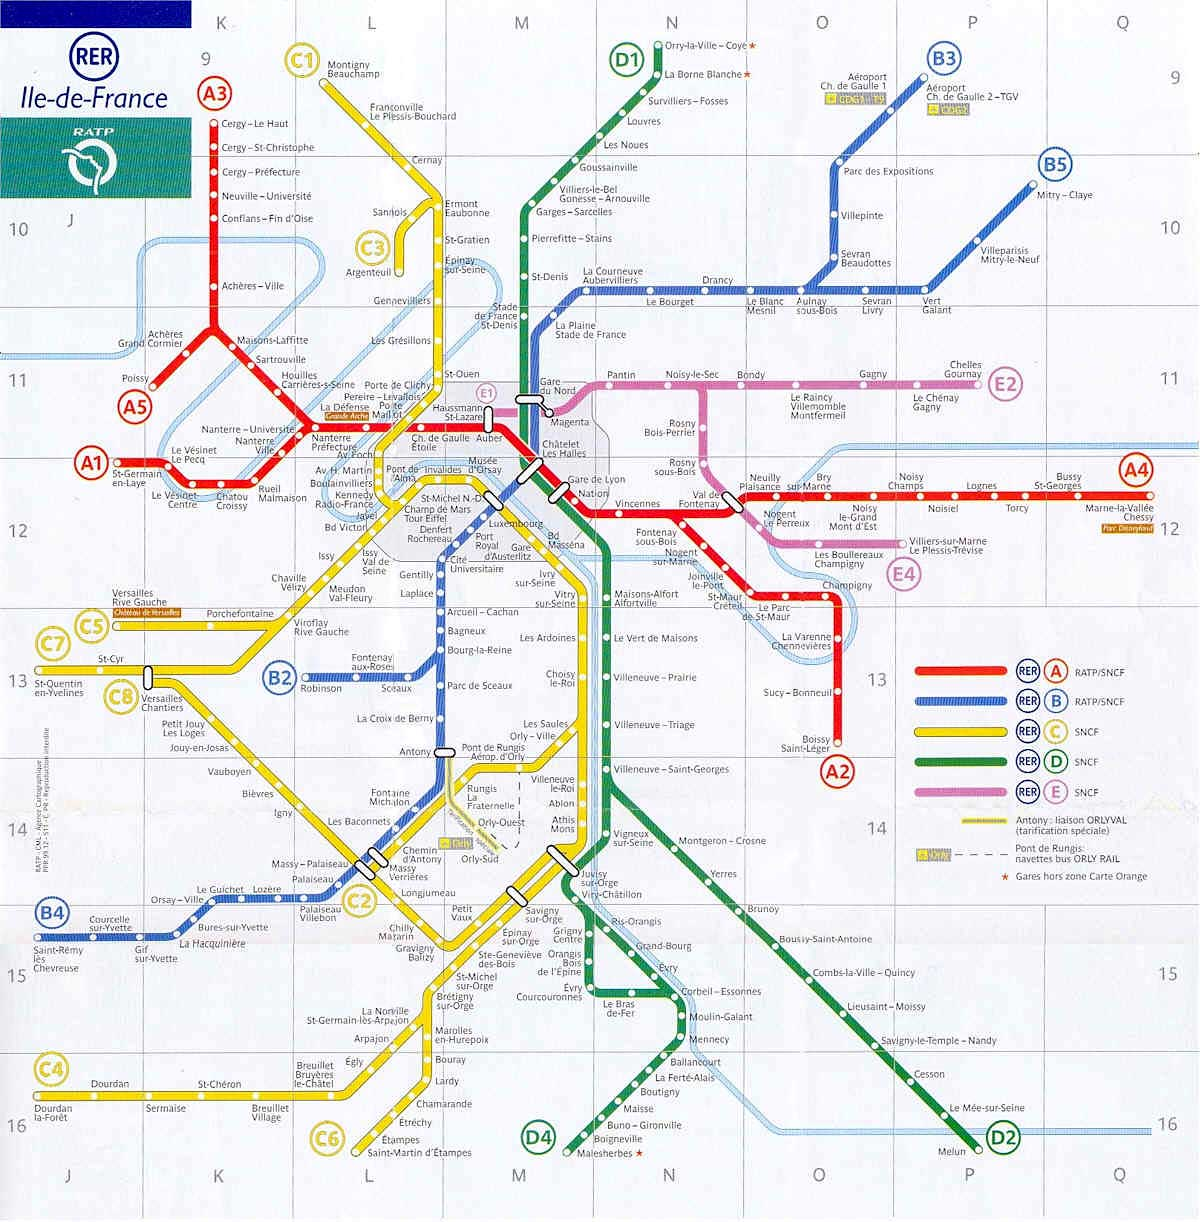 France Map Paris RER Network